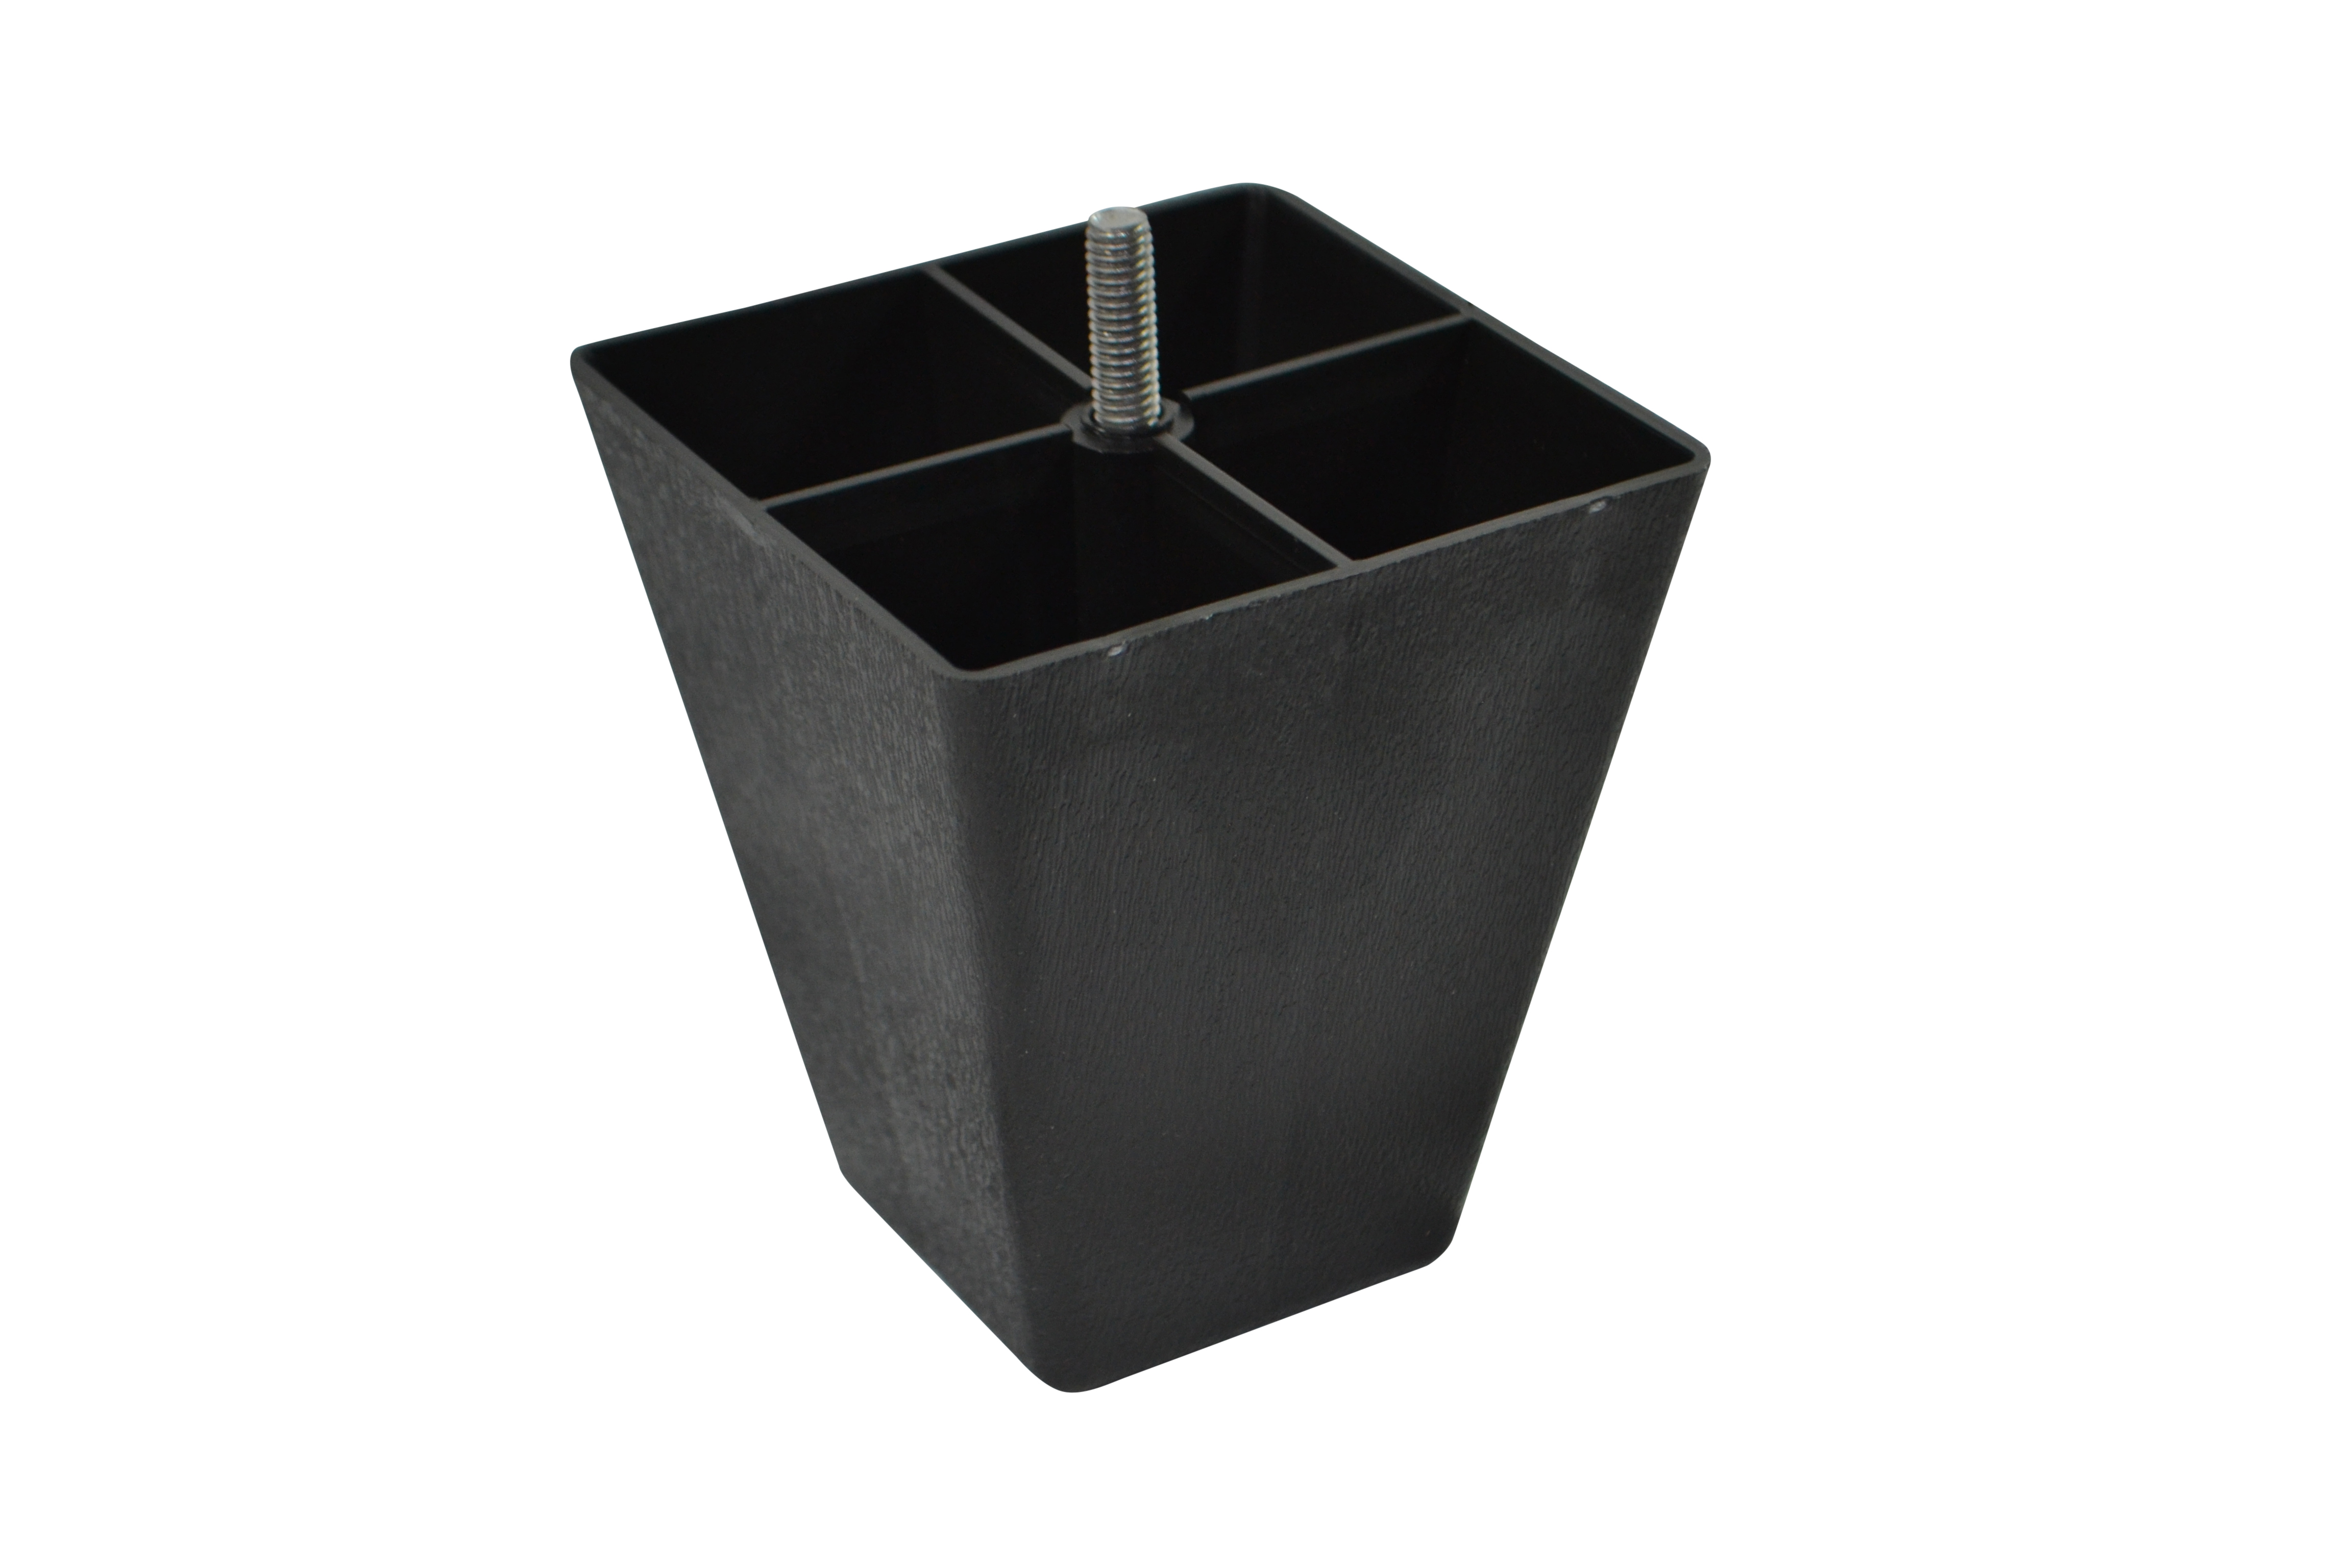 Black Plastic Pyramid Style 4.5 Inch Leg For Sofas And Recliners